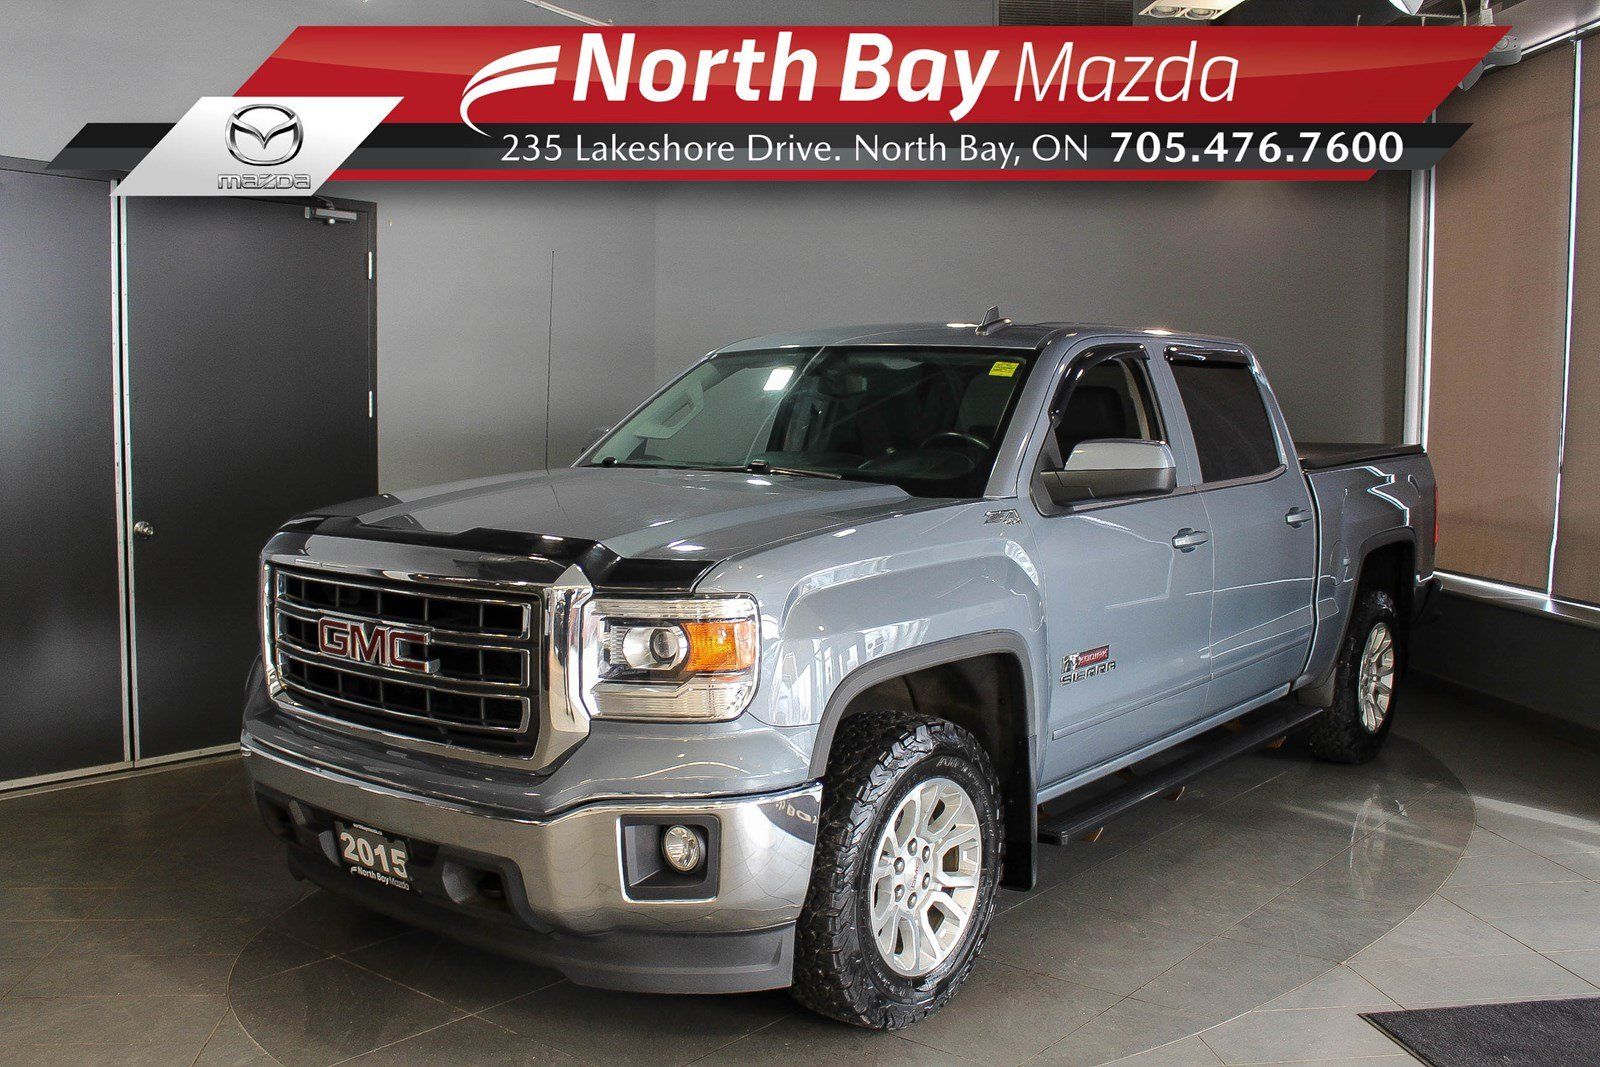 Pre-Owned 2015 GMC Sierra 1500 SLE - Test Drive Available by Appt!